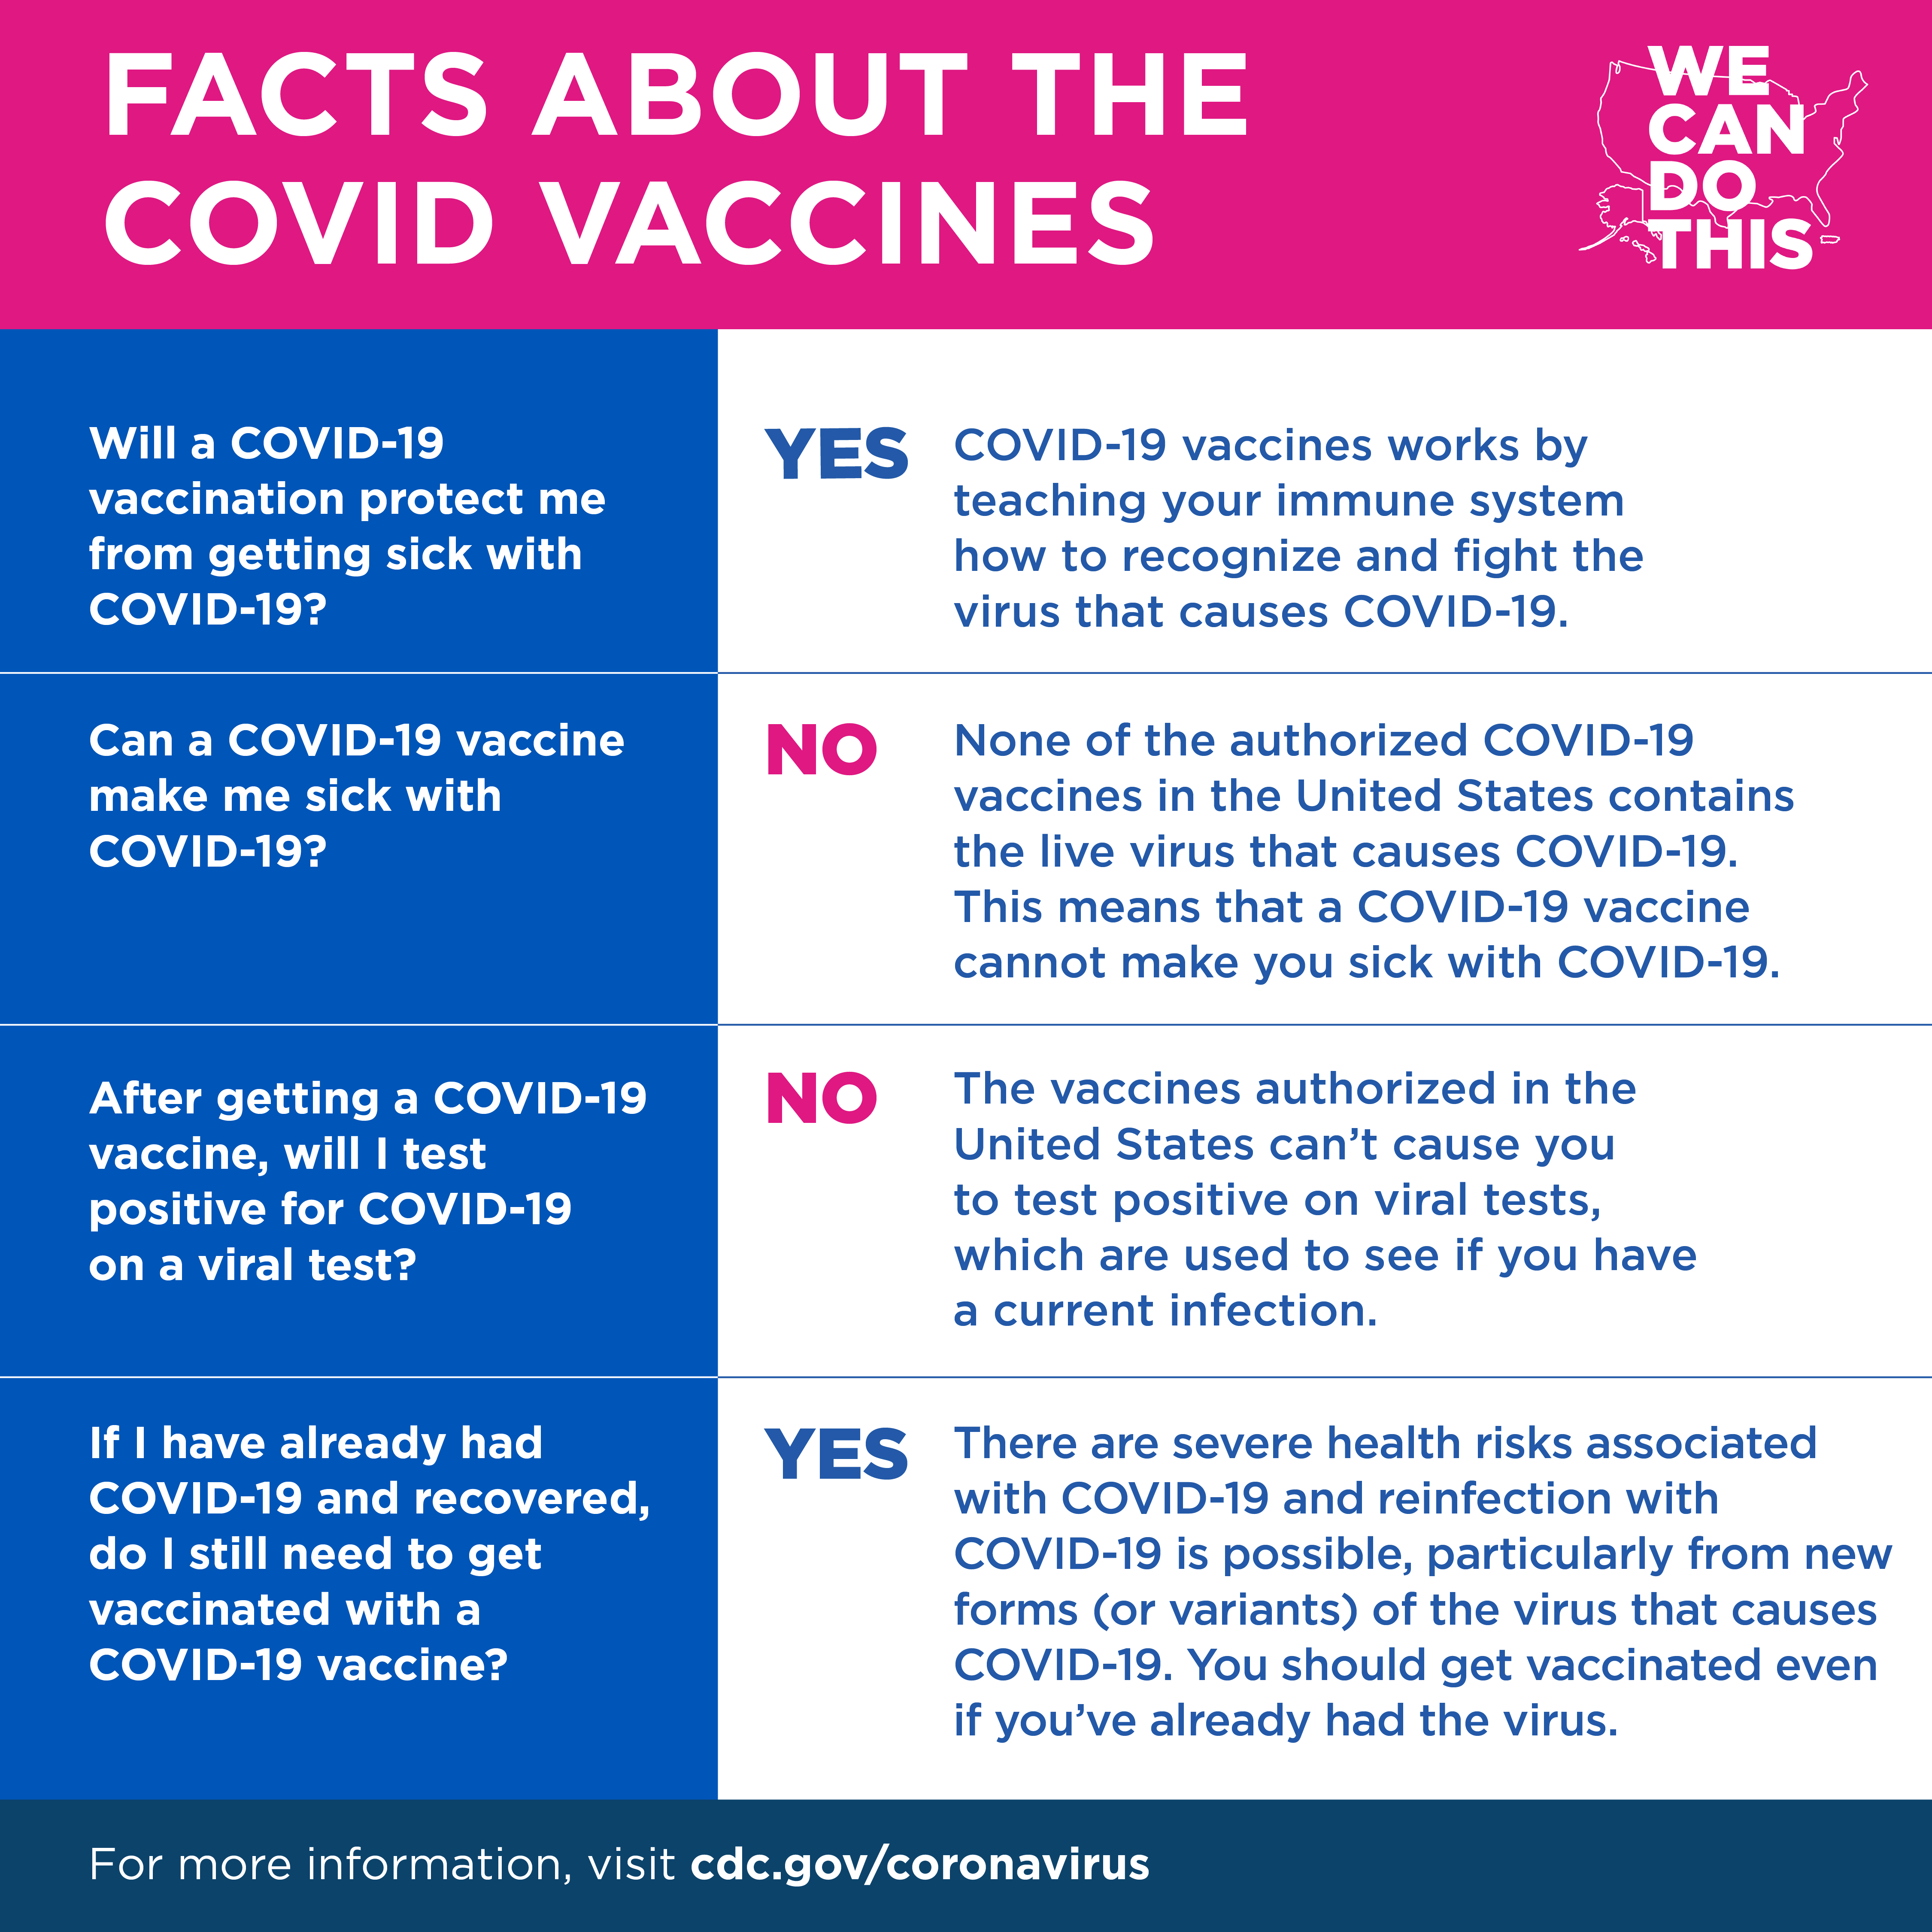 Facts About the COVID Vaccines Graphic for Facebook and Instagram